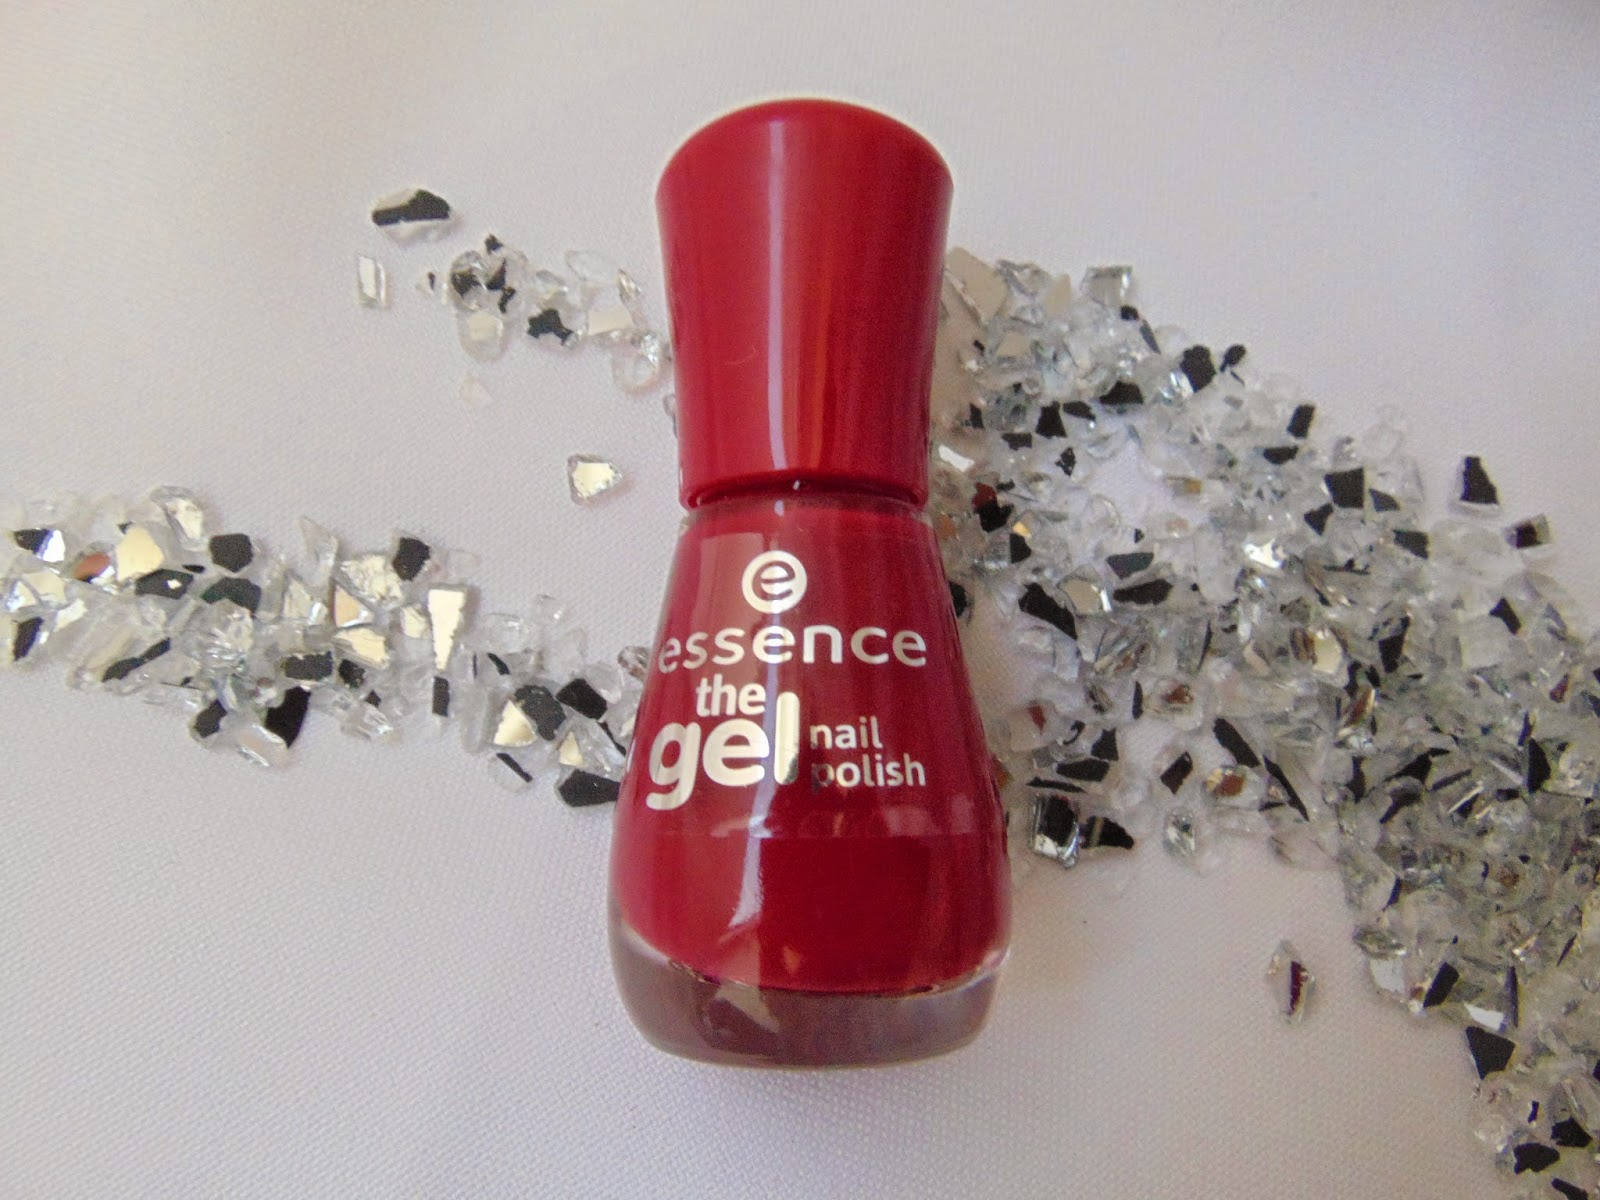 Essence the Gel Nail Polish - 10 true Love - www.annitschkasblog.de